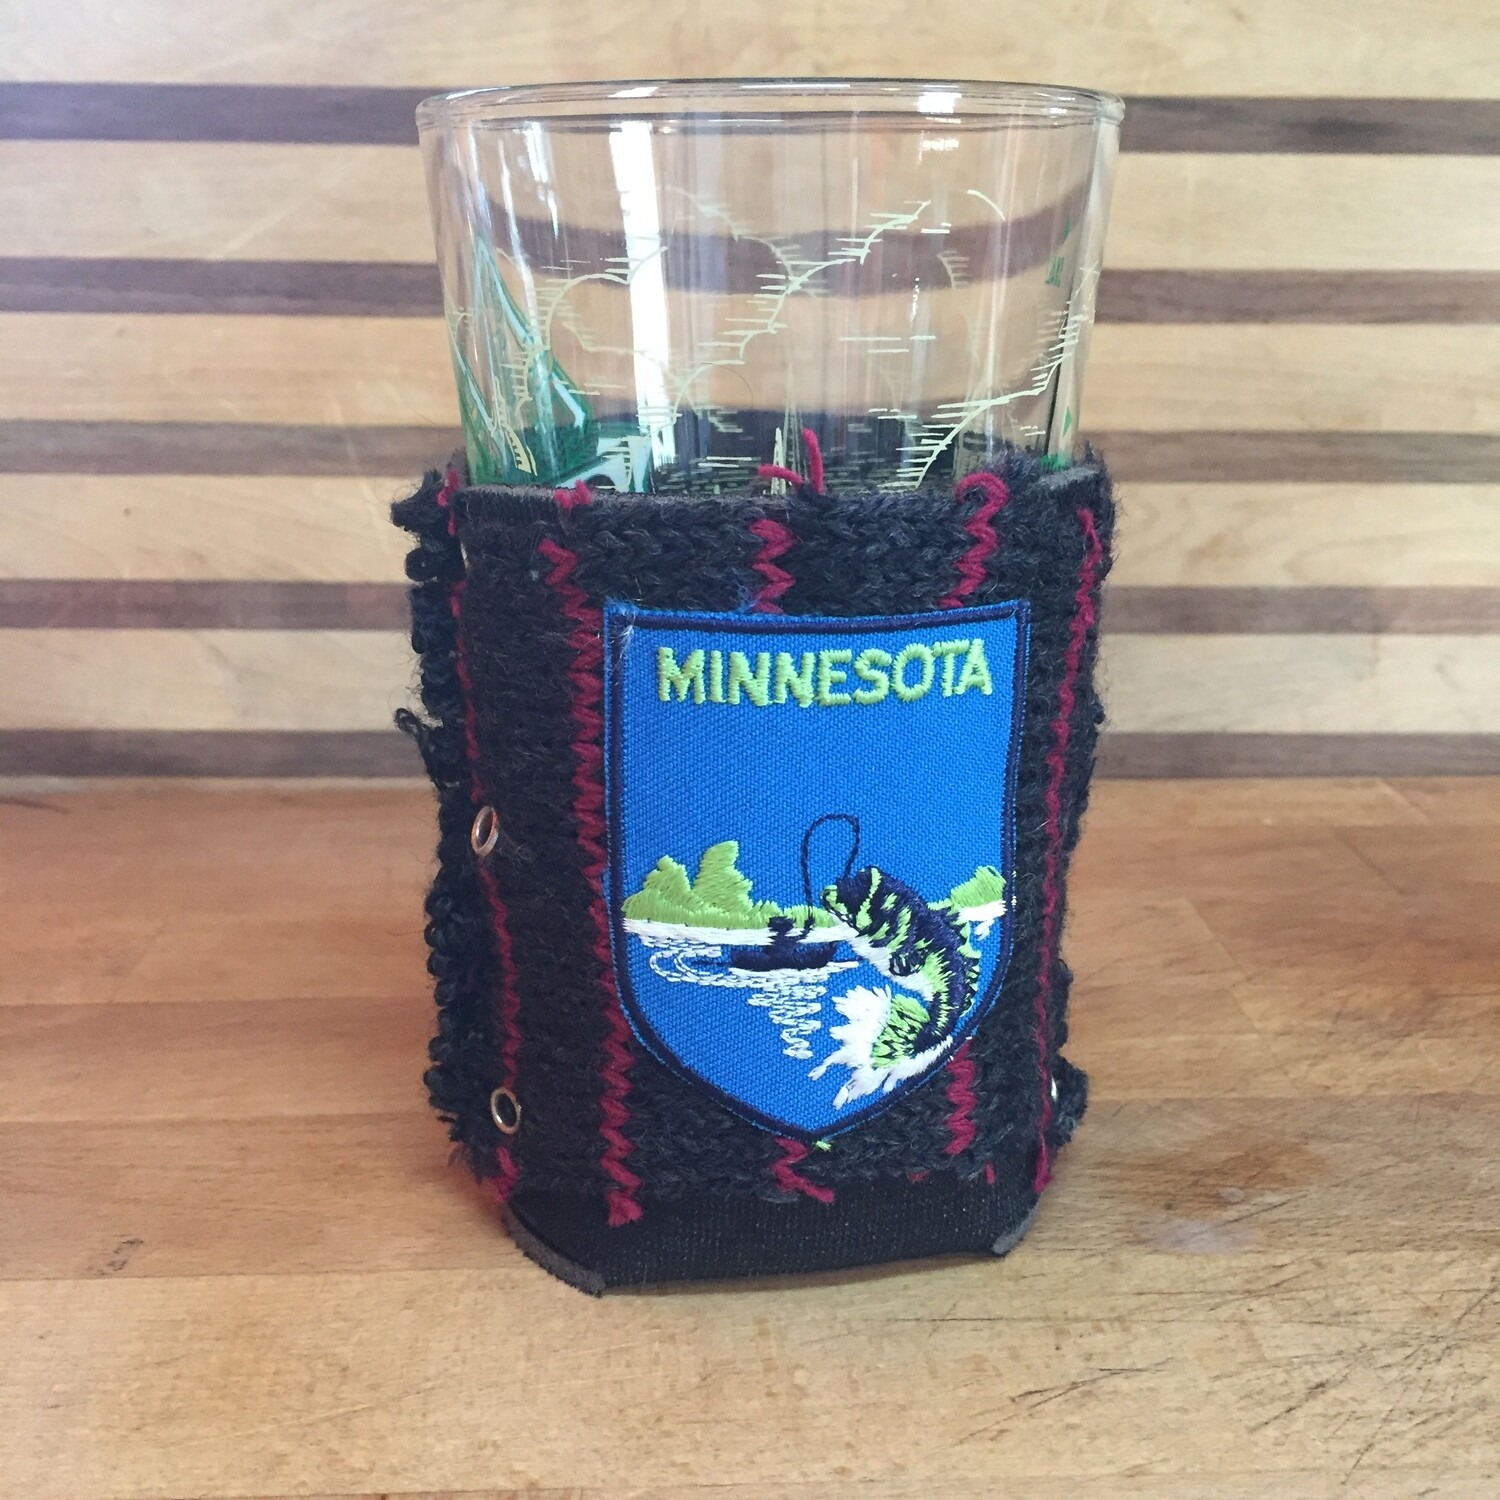 Vintage Minnesota Angler Patch Koozie - Can or Pint Coozie Holder